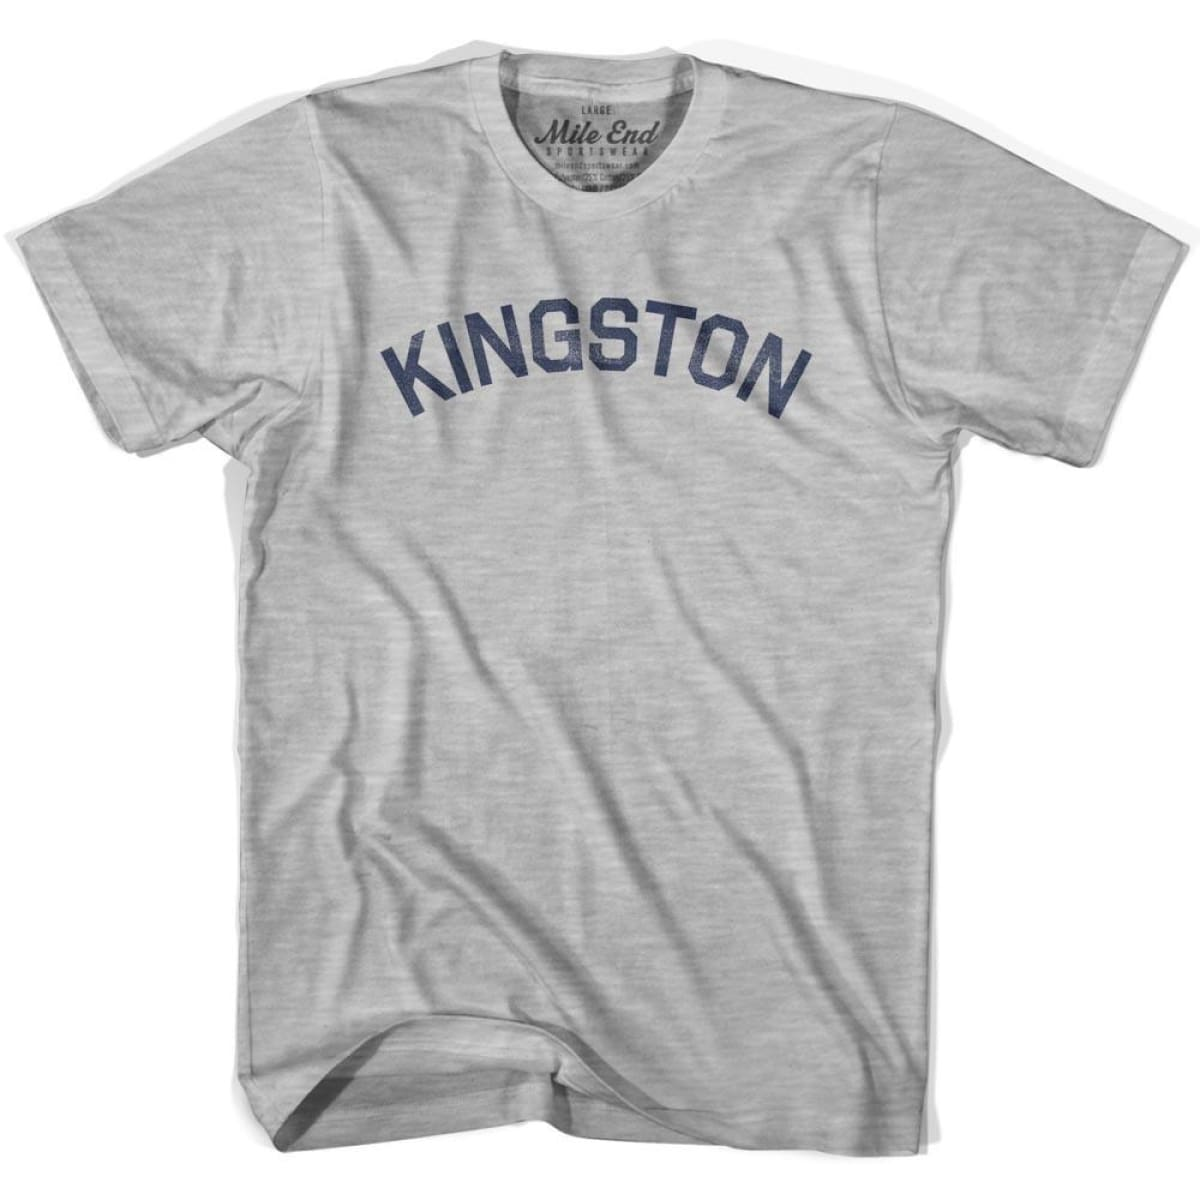 Kingston City Vintage T-shirt - Grey Heather / Youth X-Small - Mile End City